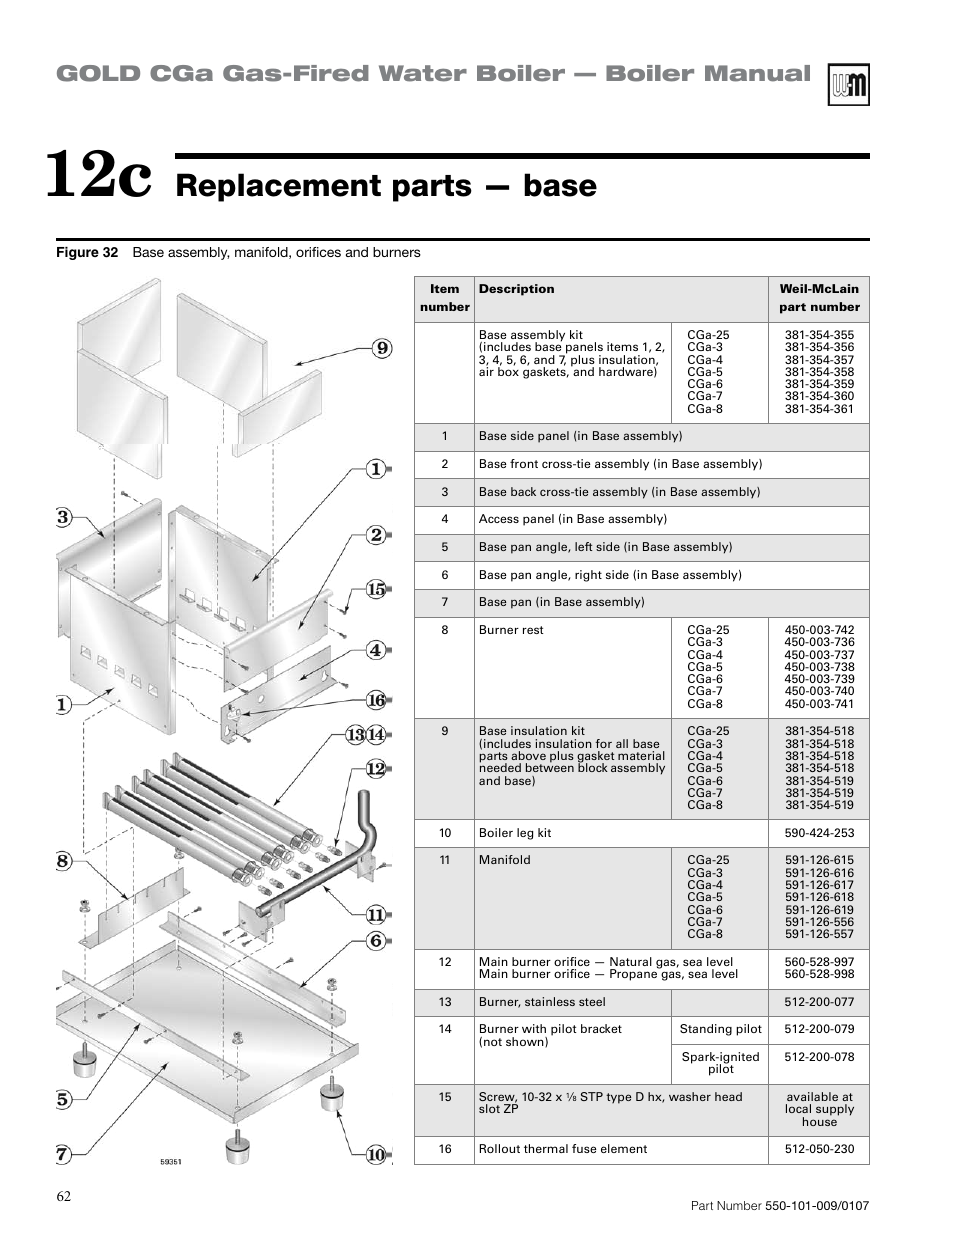 Replacement parts — base, Gold cga gas-fired water boiler — boiler ...